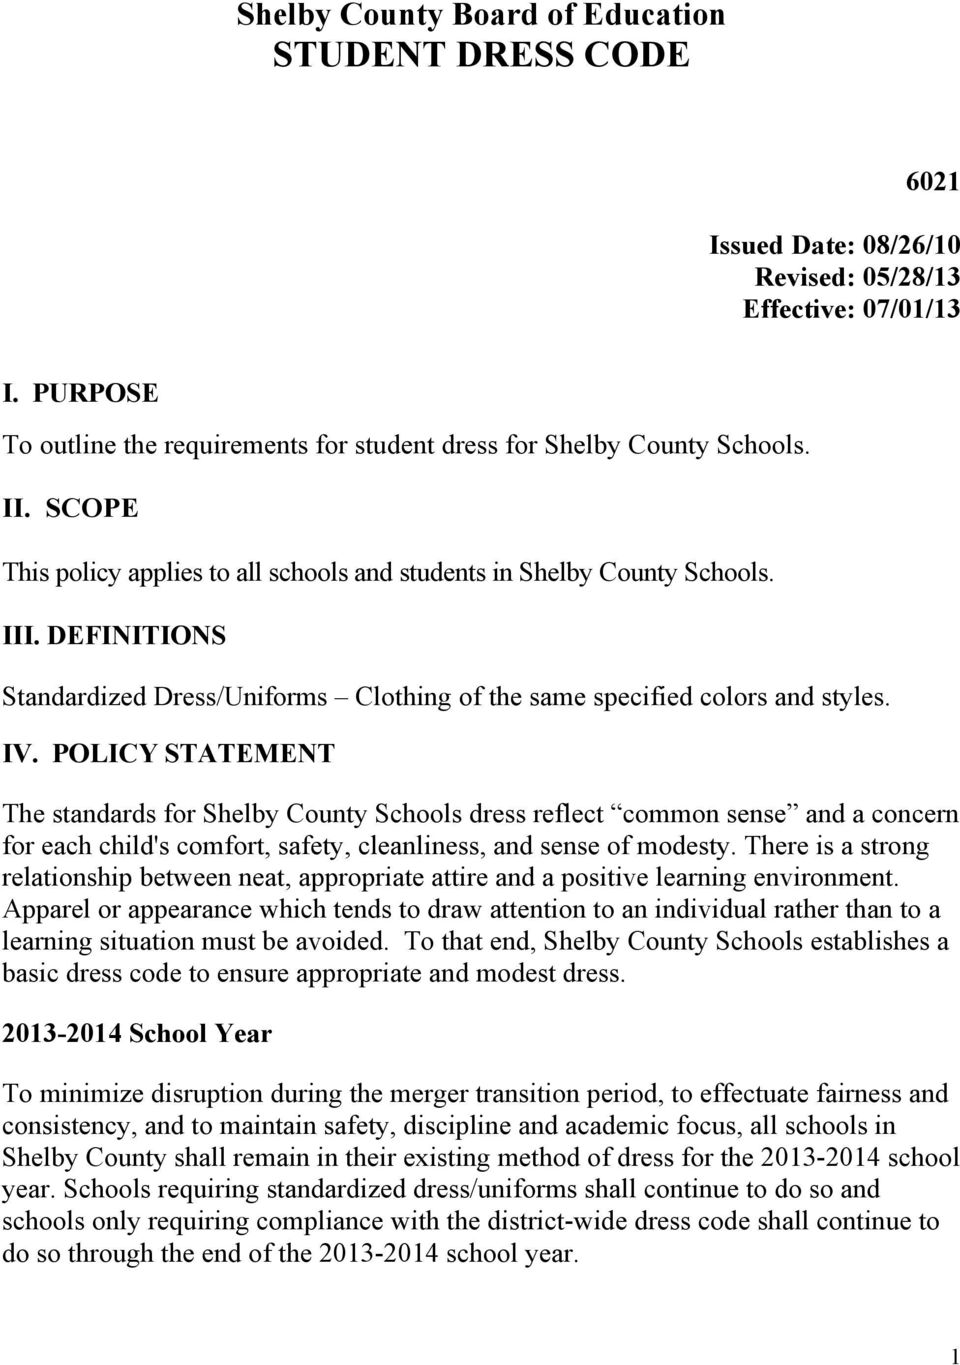 POLICY STATEMENT The standards for Shelby County Schools dress reflect common sense and a concern for each child's comfort, safety, cleanliness, and sense of modesty.